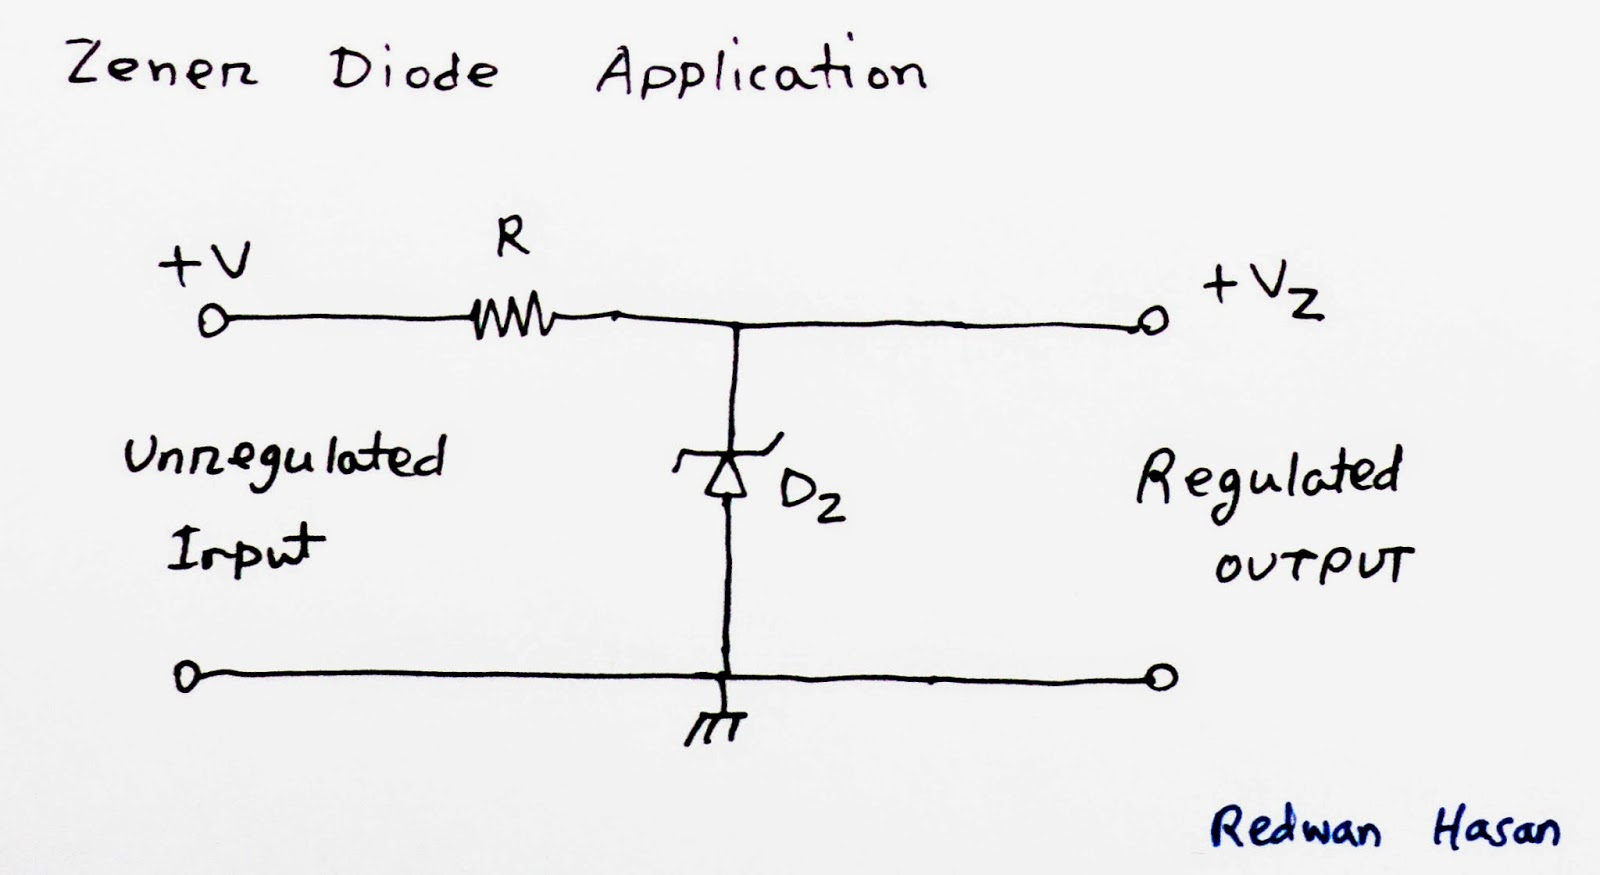 hight resolution of in the figure above we will just give different voltage levels as input say we are using a source which has a voltage of 10v 15v